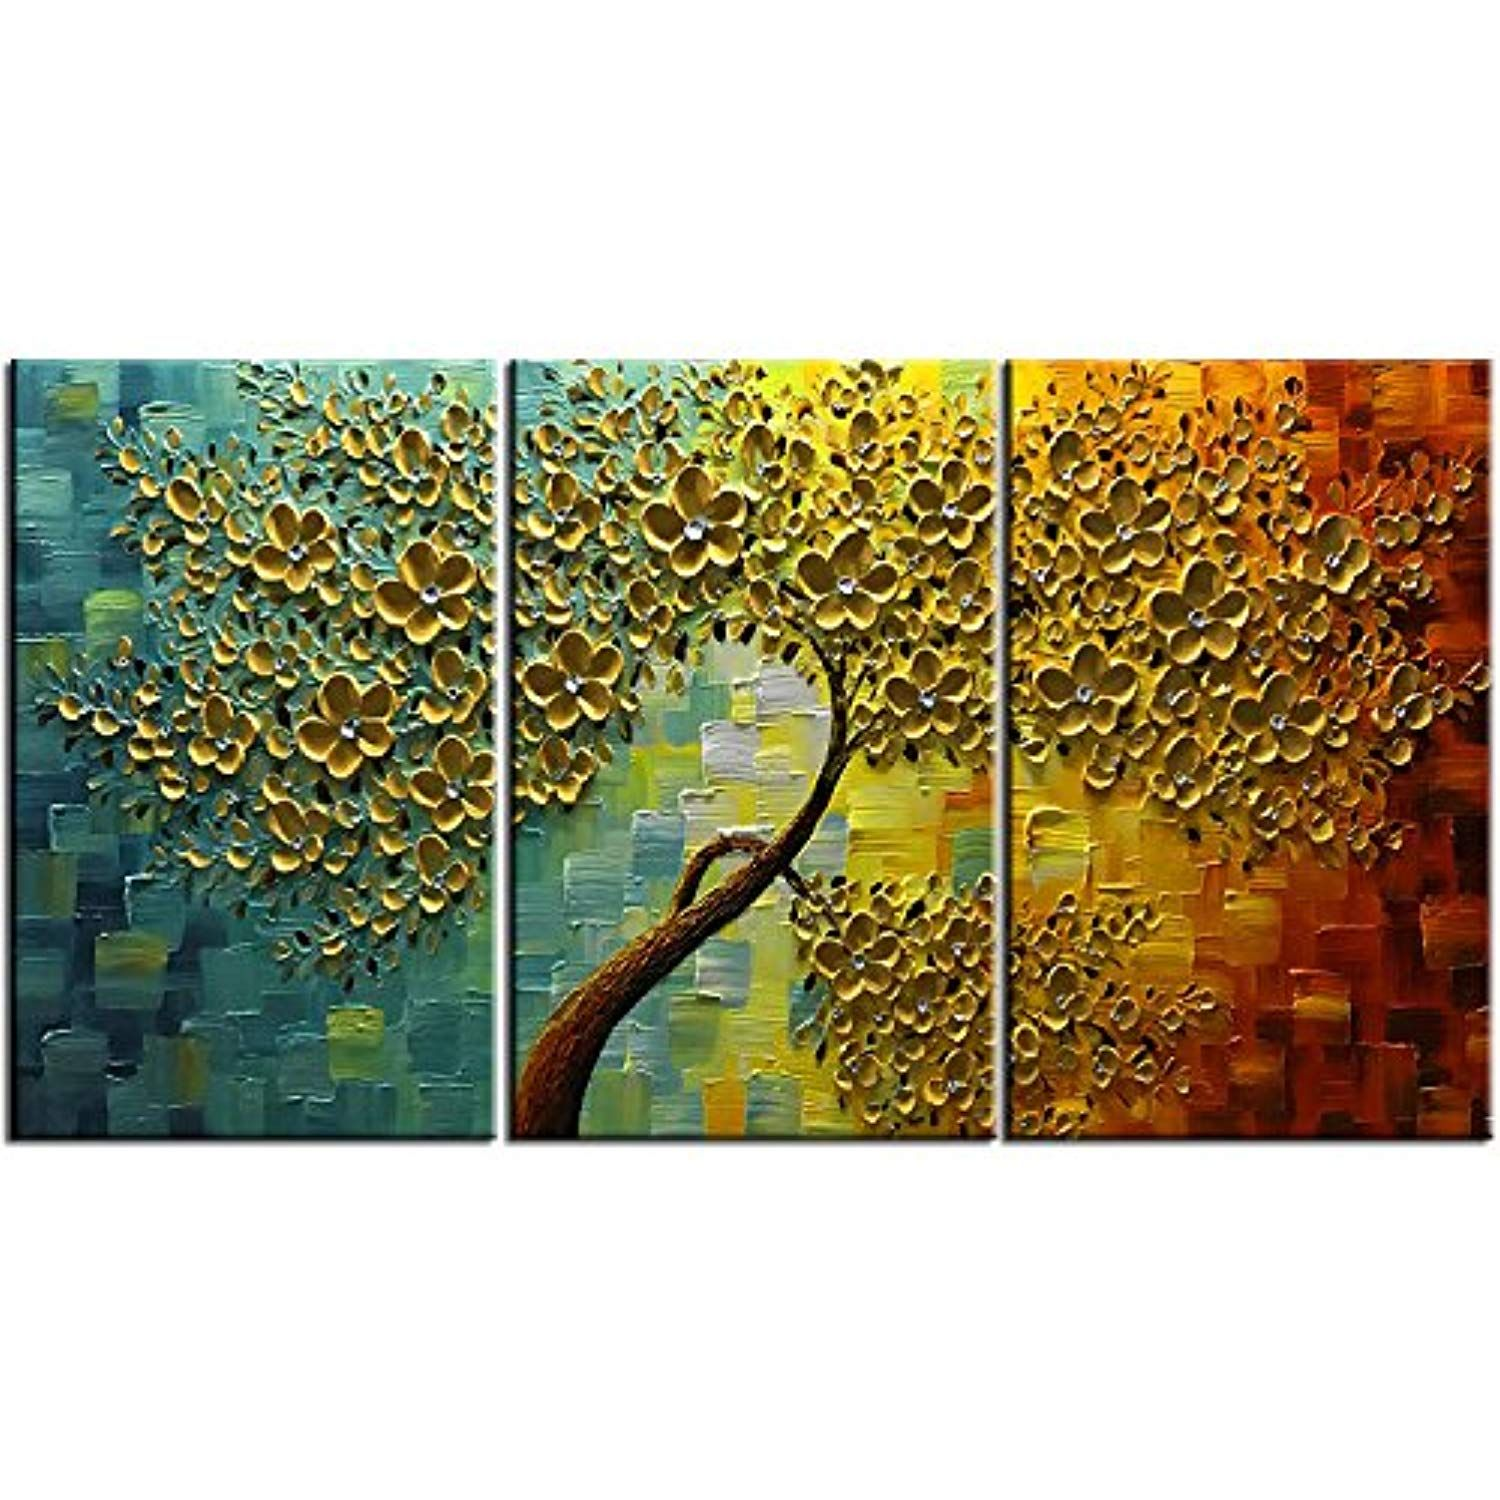 Baccow 28 20 3 Hand Painted 3 Piece Wall Art 3d Oil Painting On